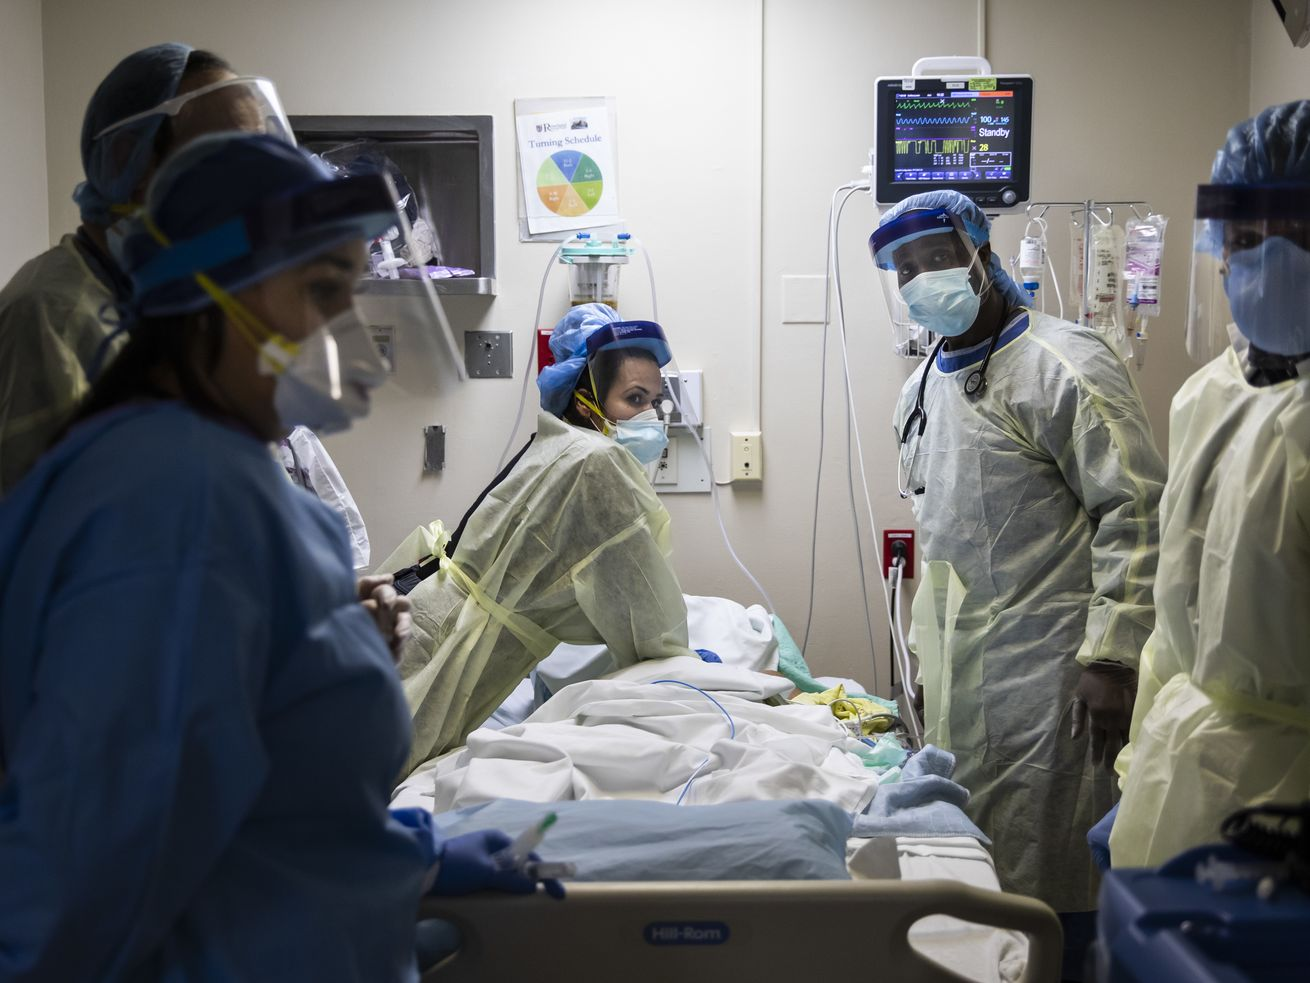 Death toll expected to spike following Illinois' rise in coronavirus cases: 'We're heading for another surge'